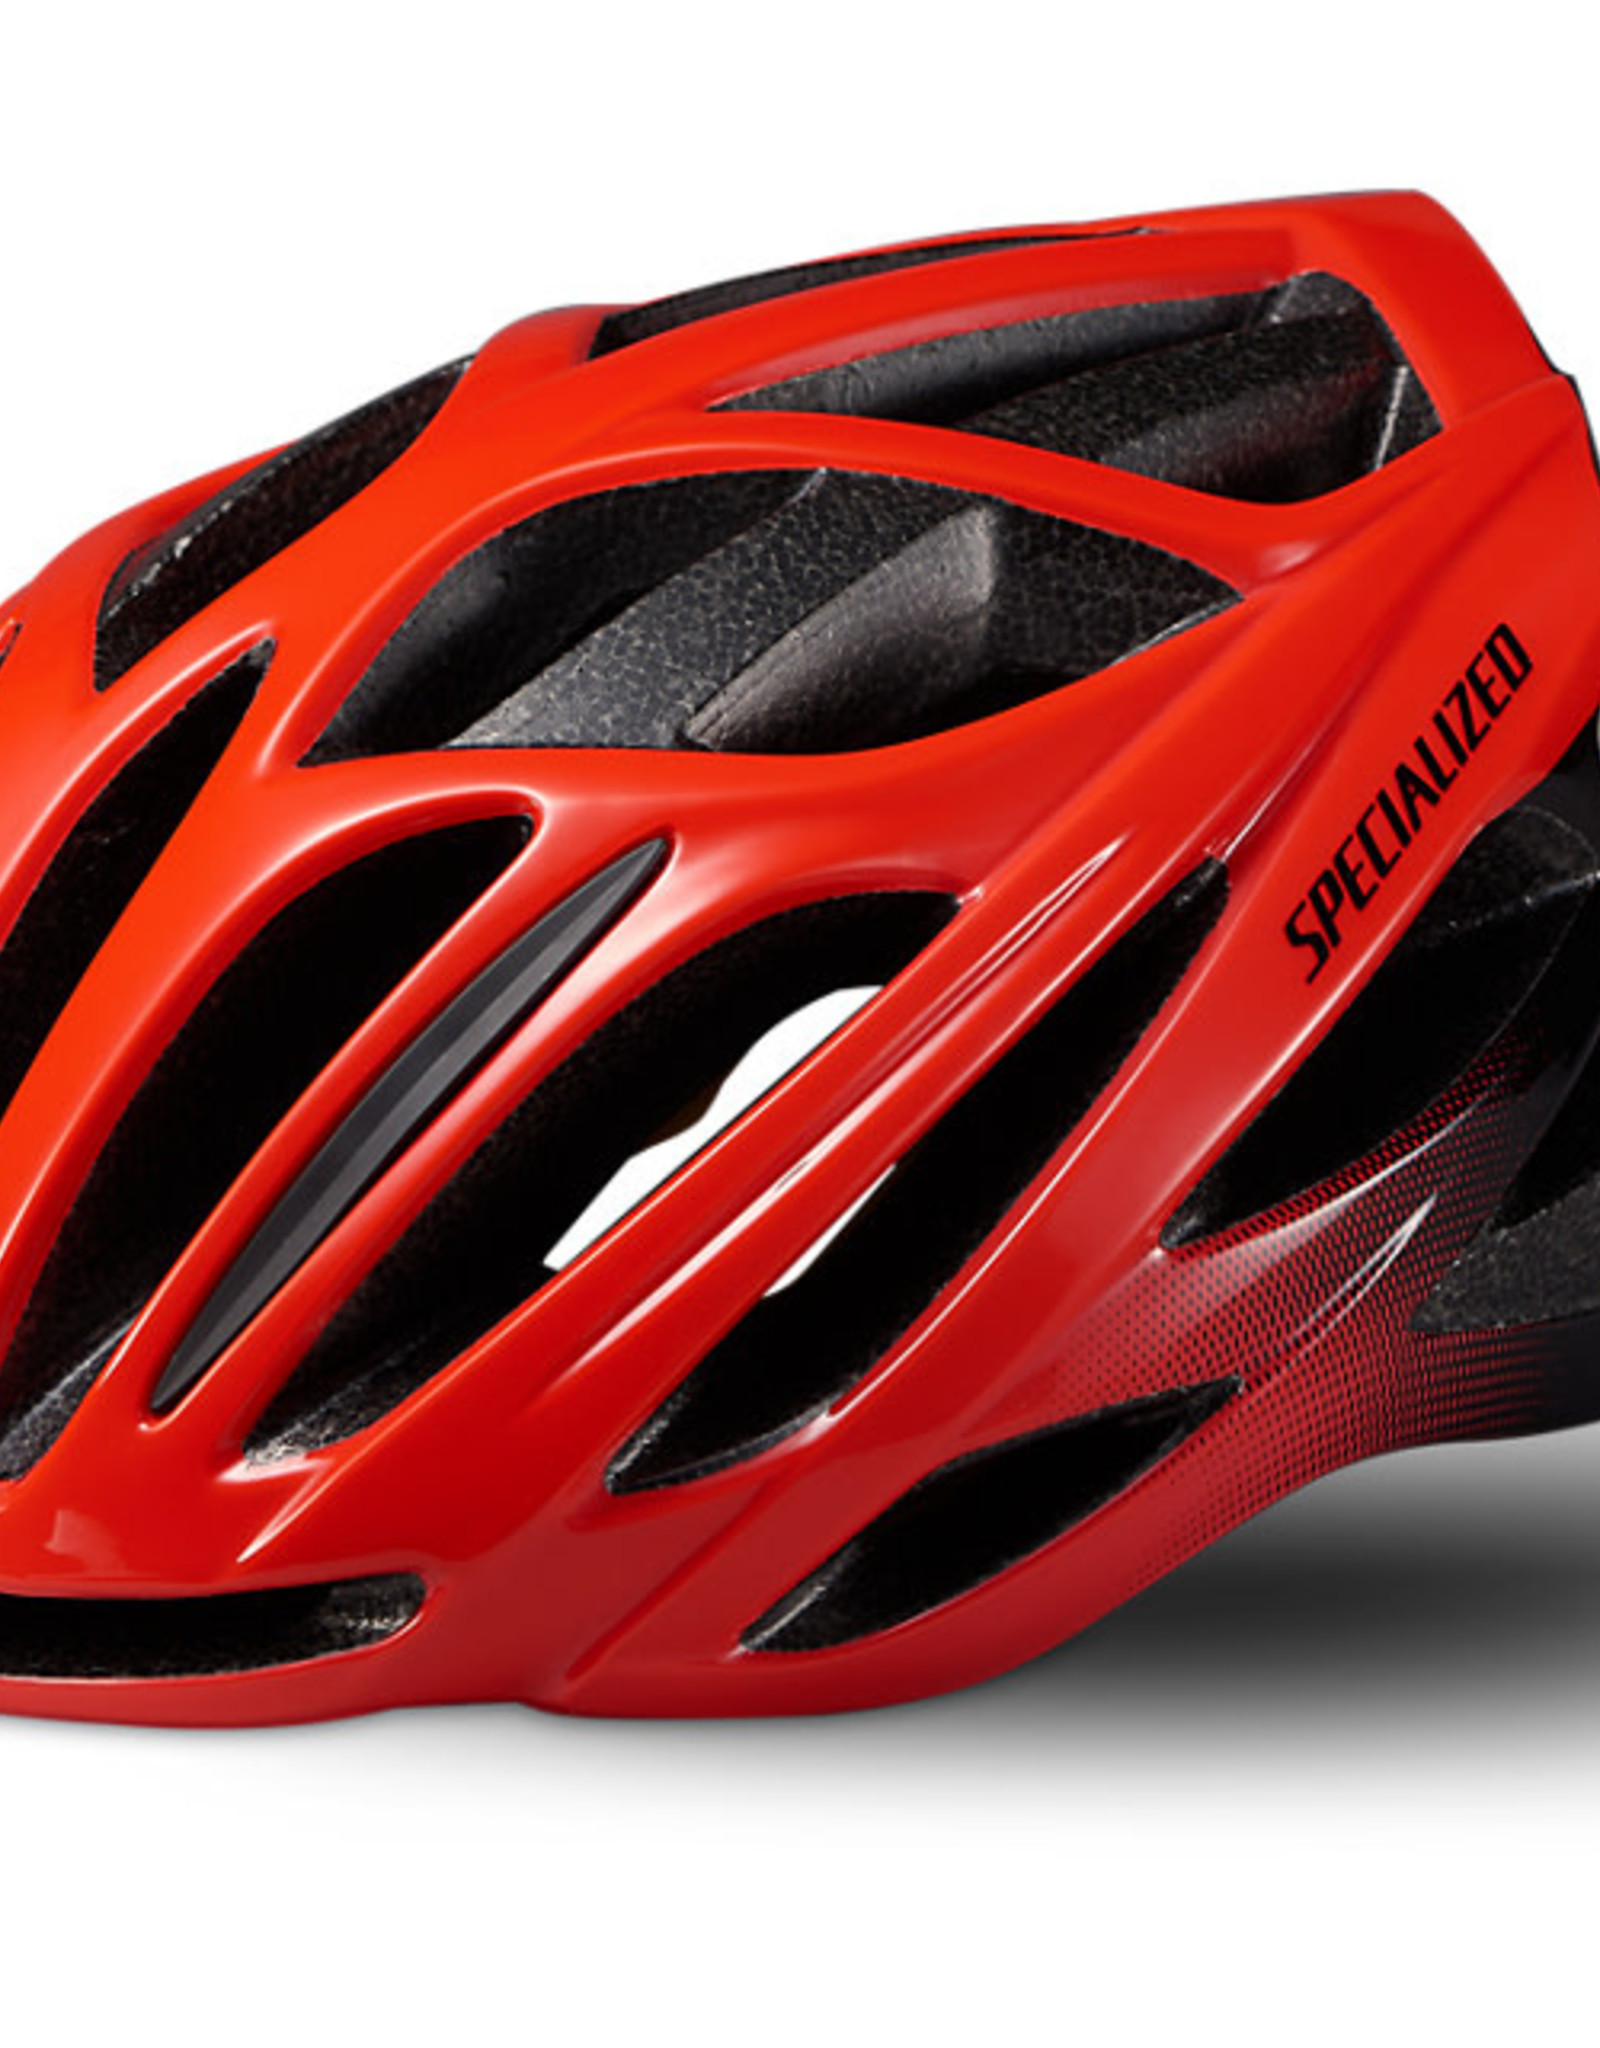 SPECIALIZED Specialized ECHELON II MIPS HELMET - Rocket Red/Black MED